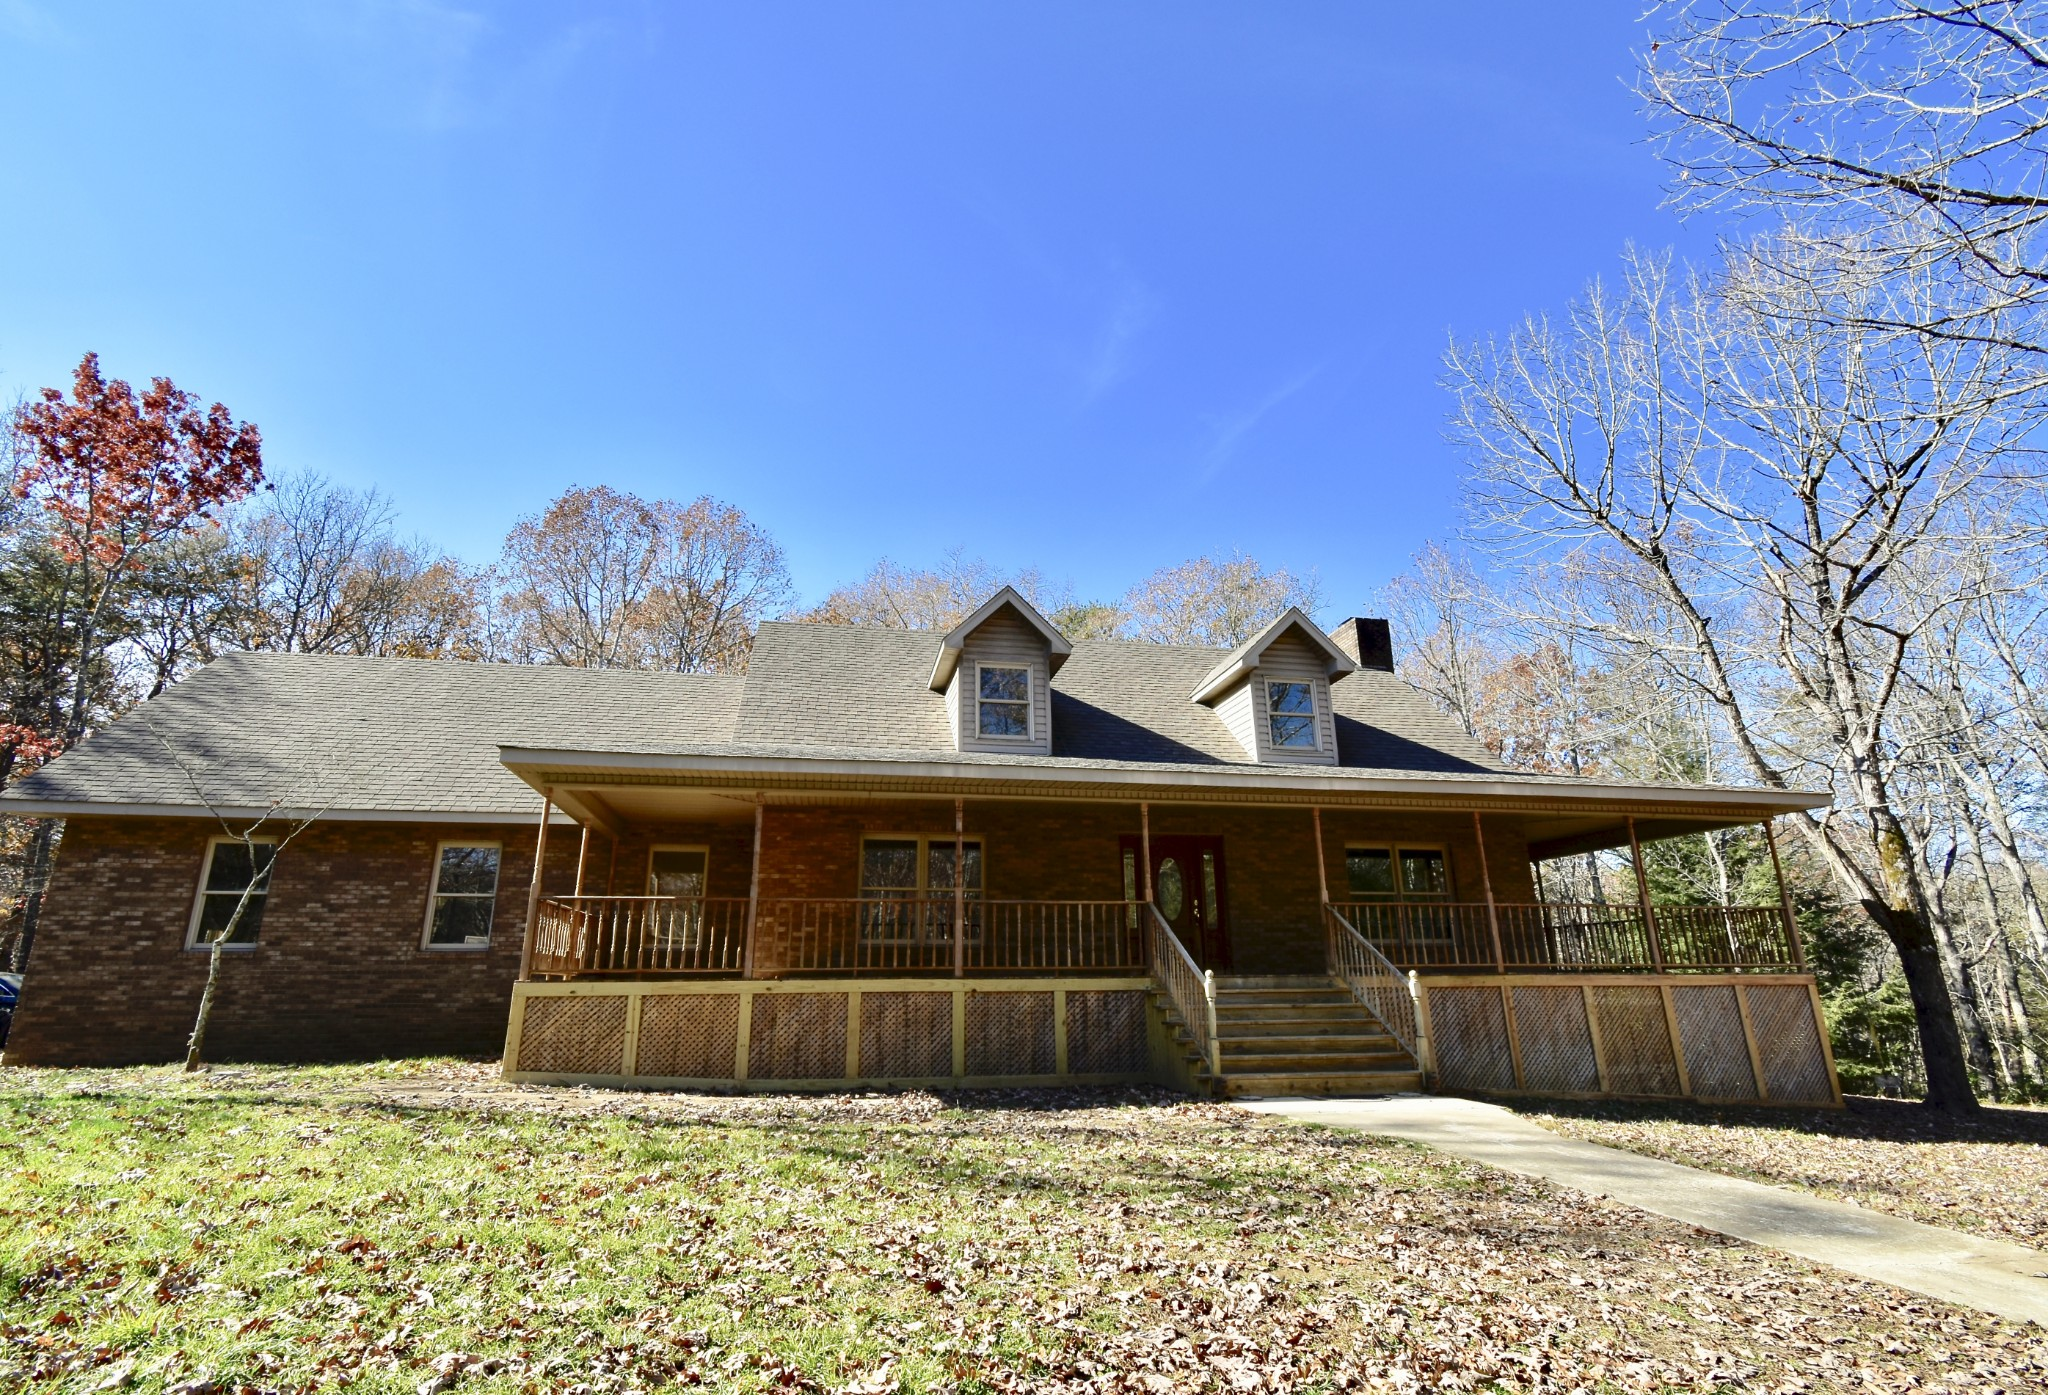 2117 Summerfield Rd, Monteagle, TN 37356 - Monteagle, TN real estate listing